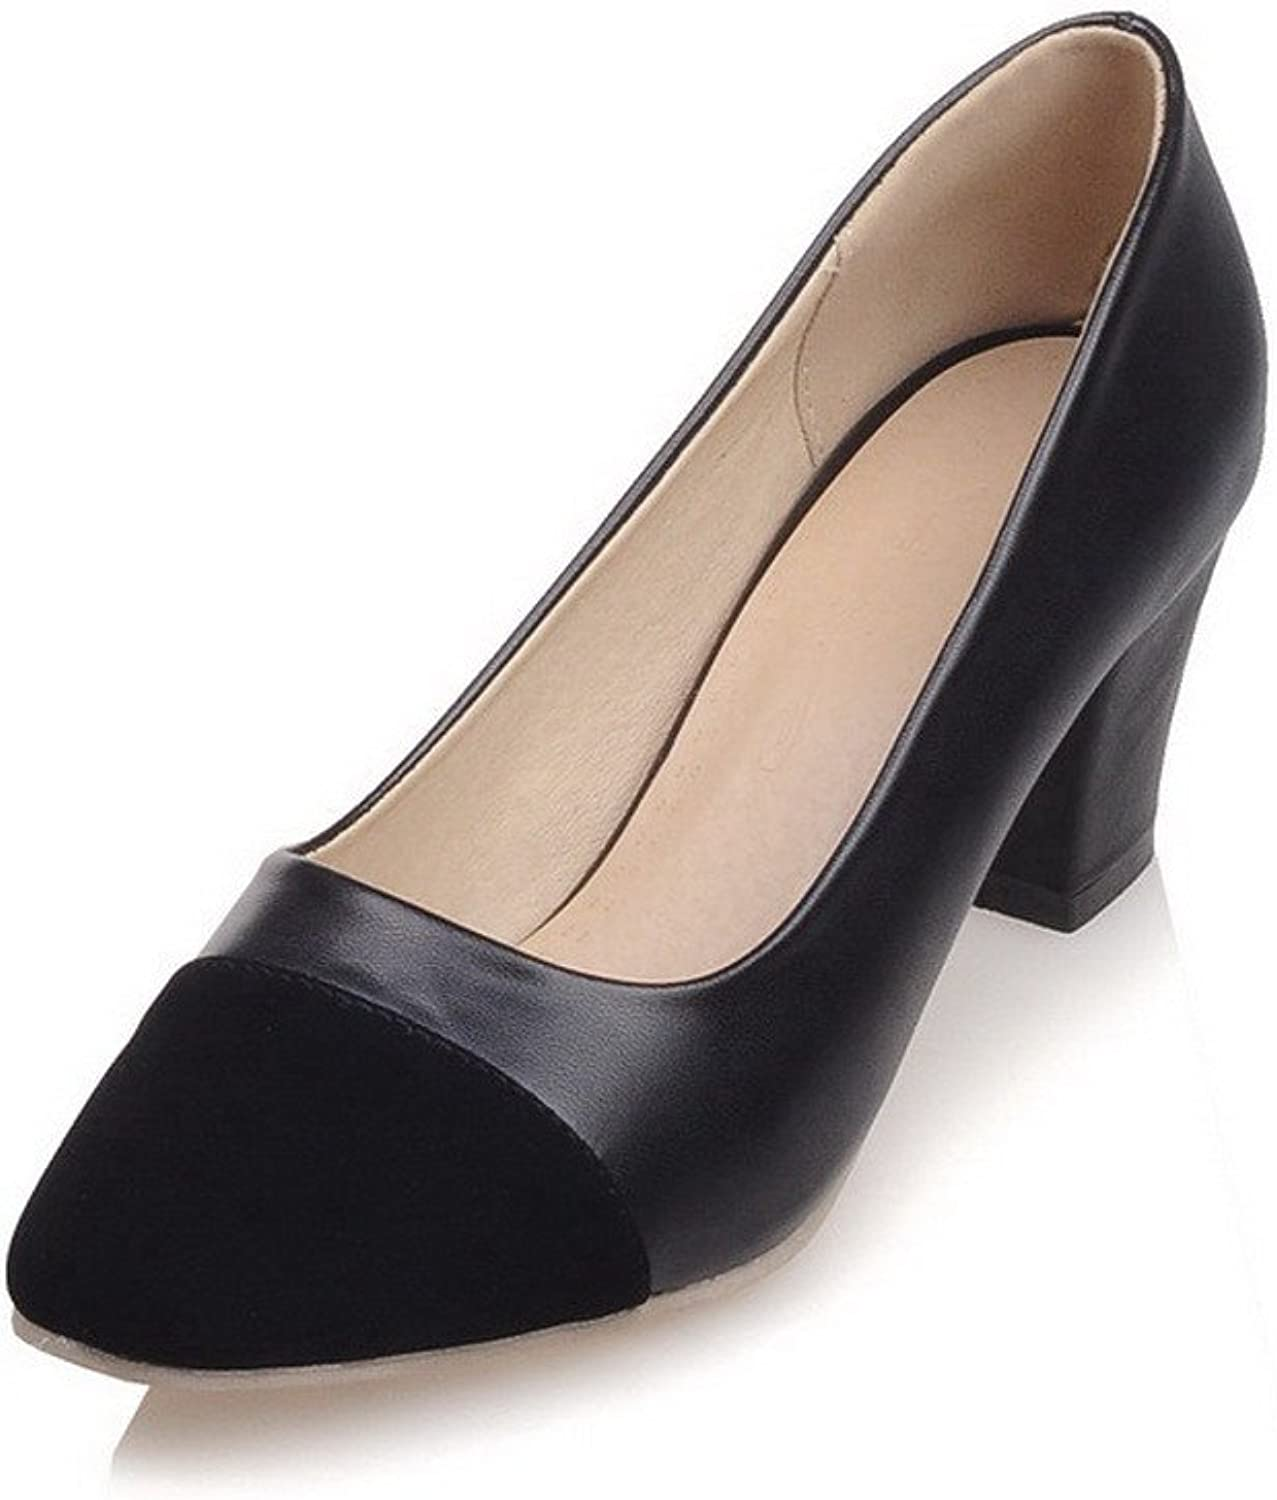 WeenFashion Women's Blend Materials Kitten-Heels Square Closed Toe Pull-on Pumps-shoes